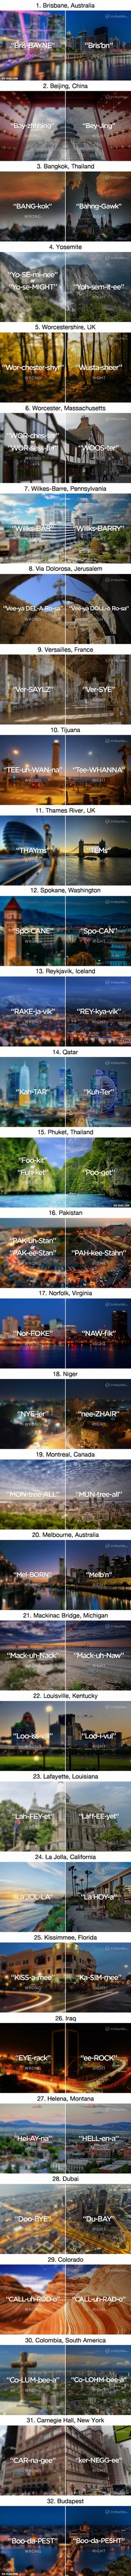 32 Places People Have Mispronounced Their Entire Life - 9GAG